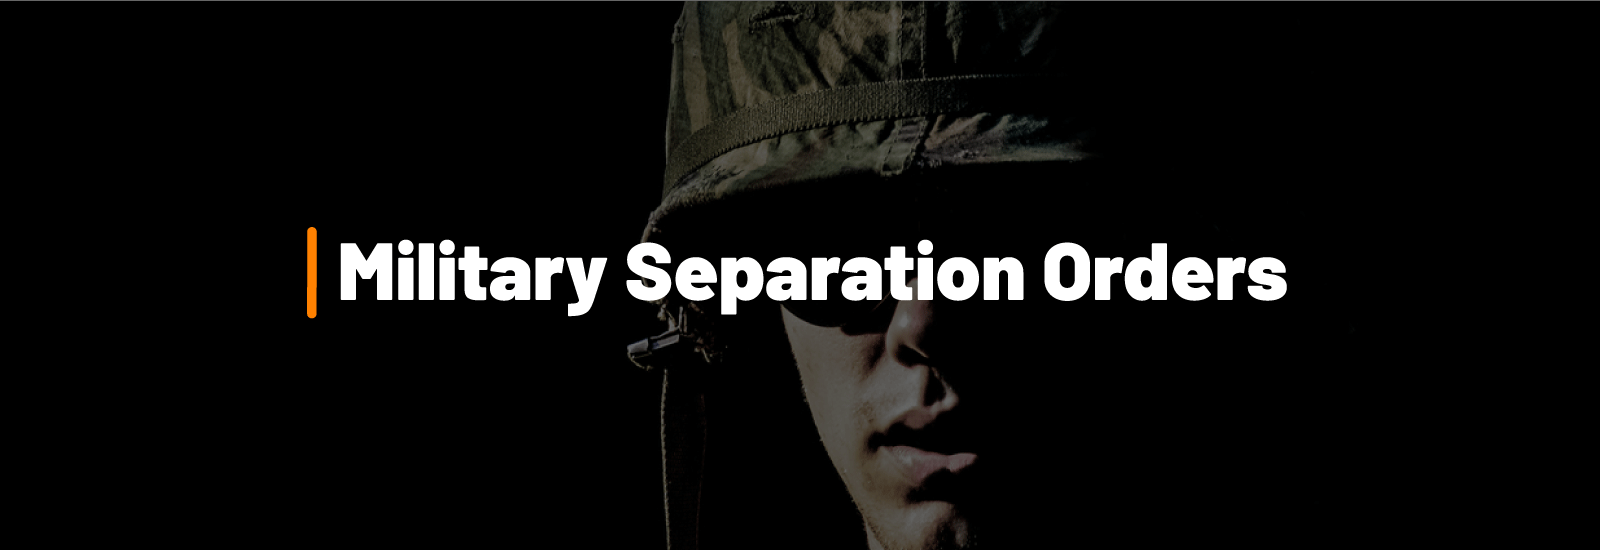 Military Separation Orders